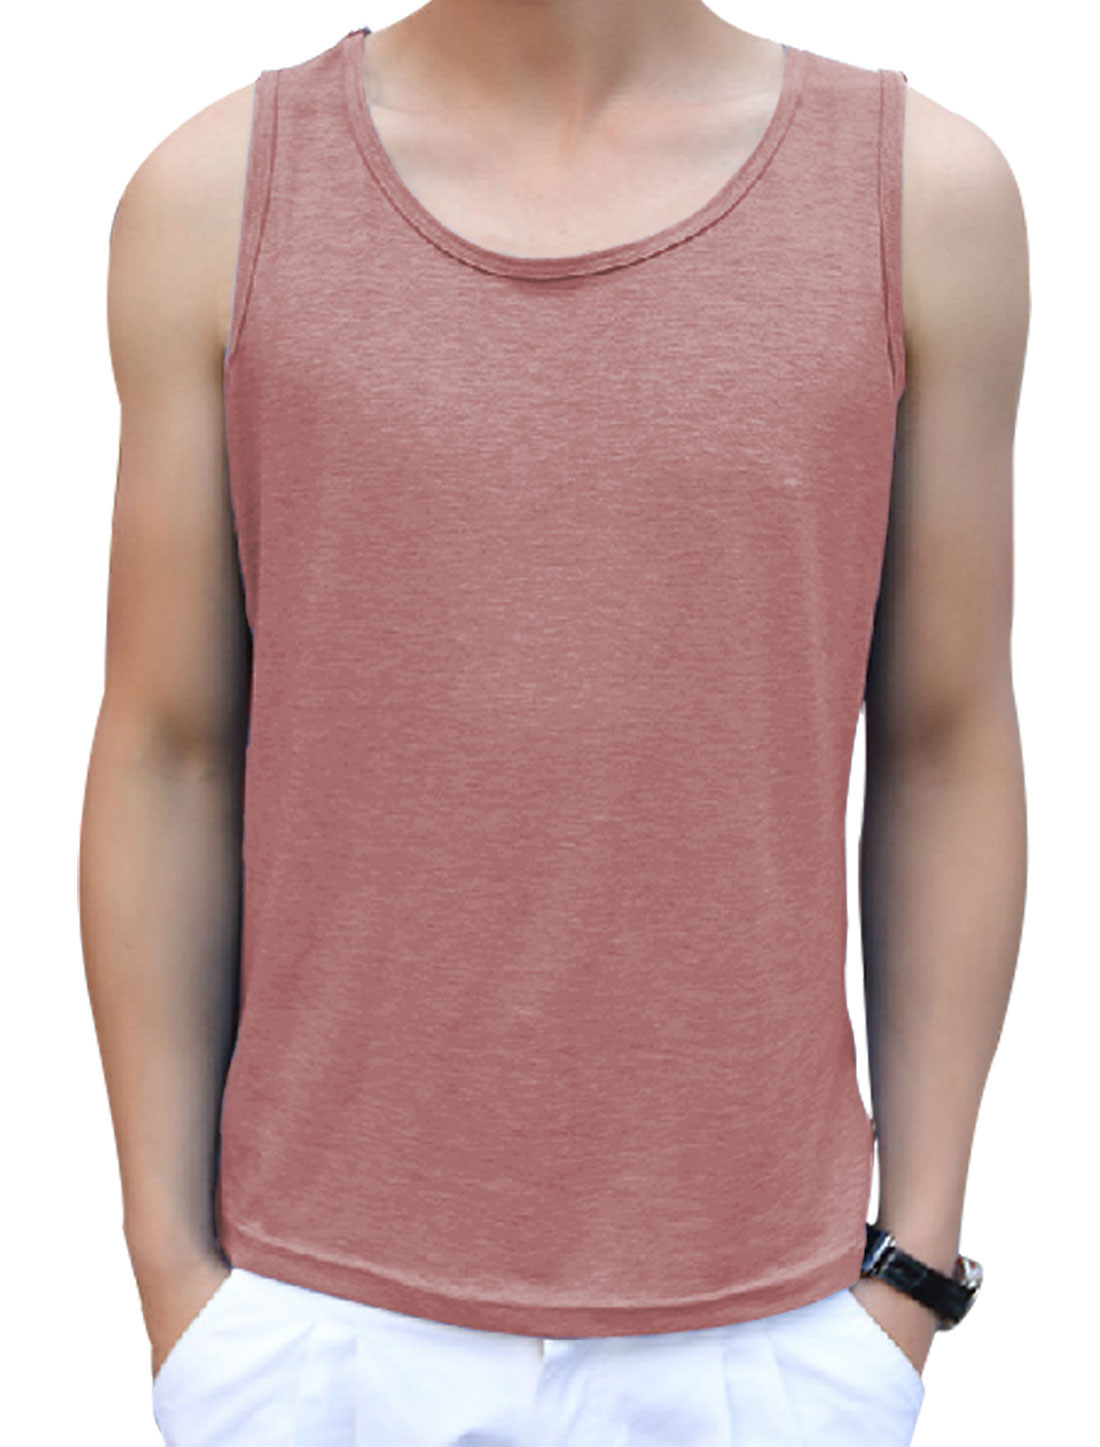 Round Neck Sleeveless Casual Tank Top for Man Plum Pink M